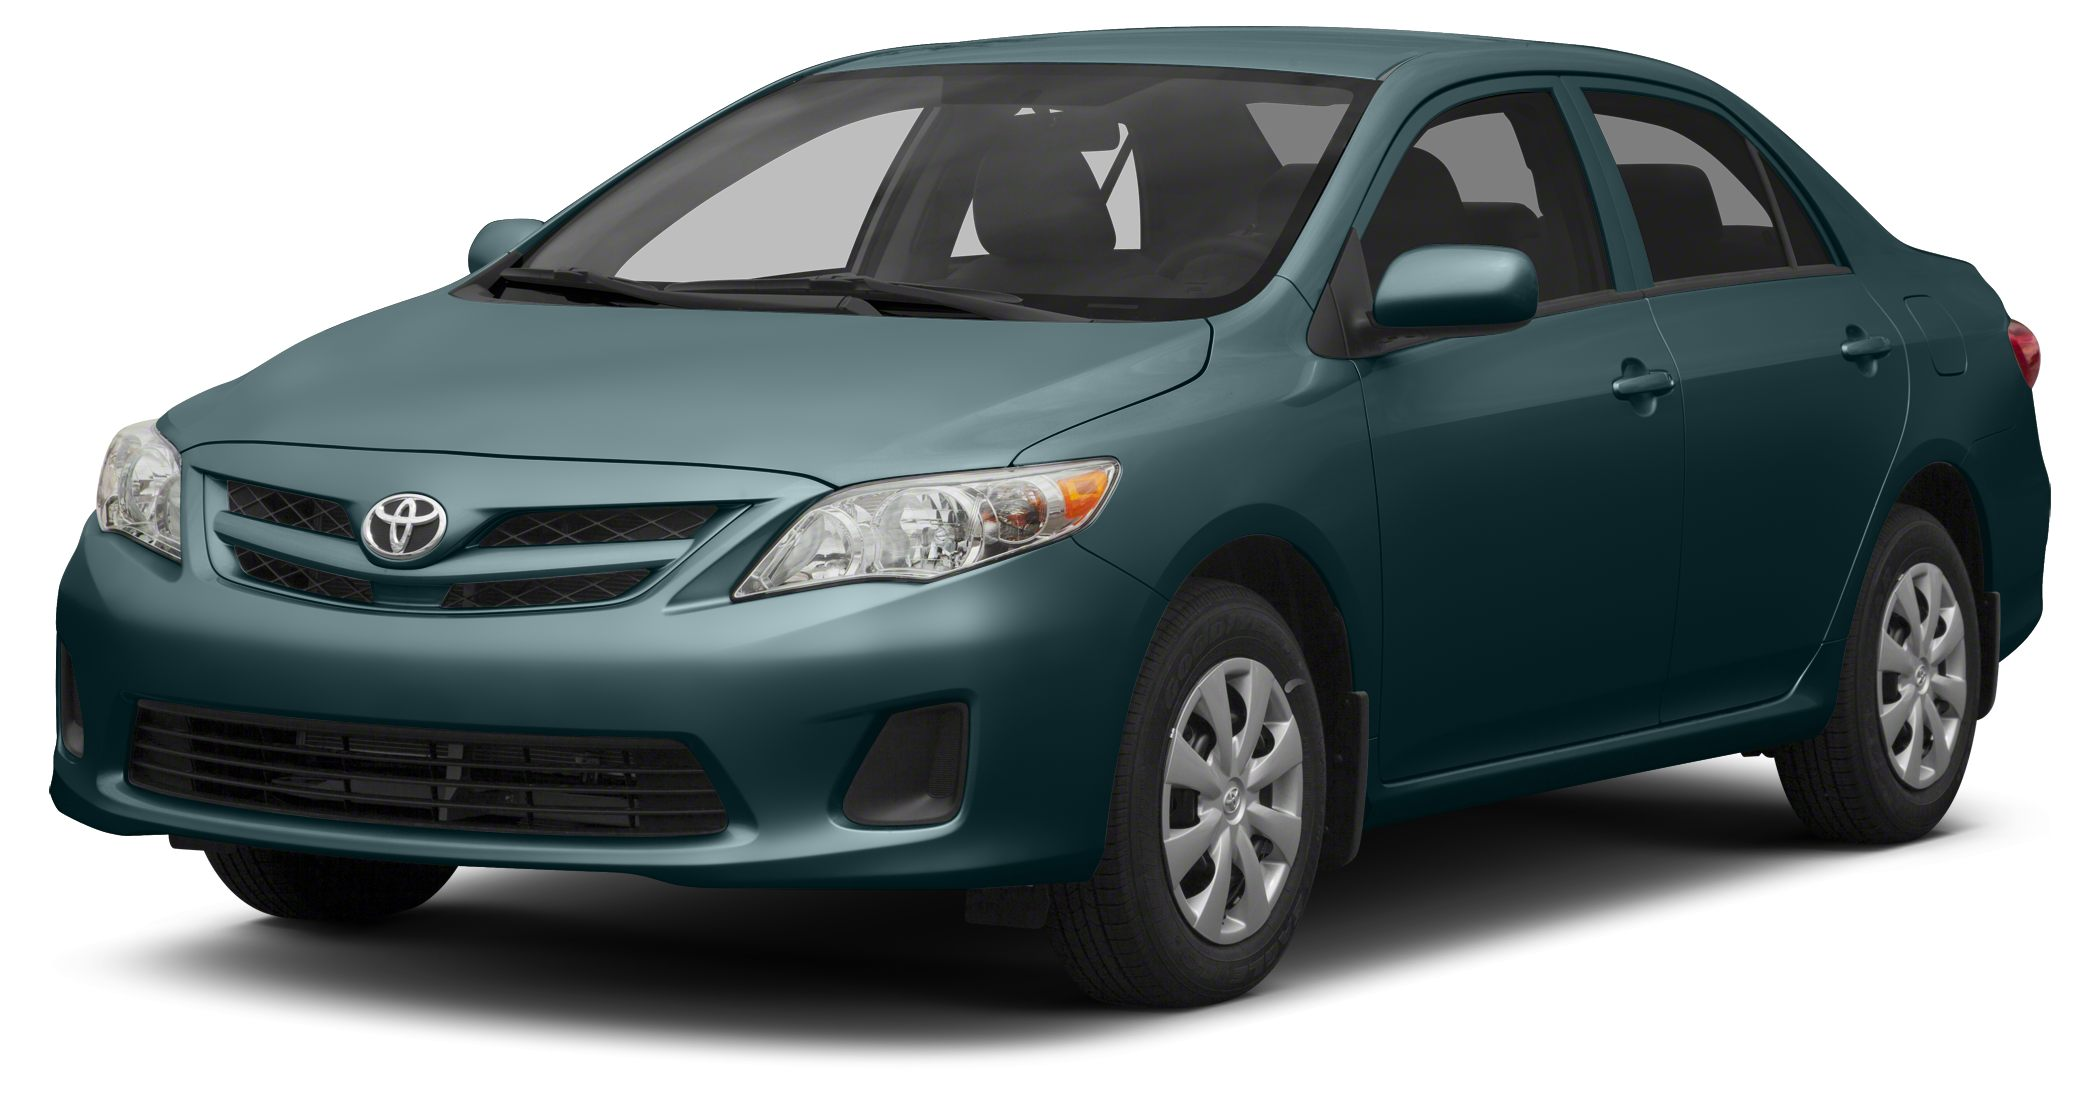 2013 Toyota Corolla LE EPA 34 MPG Hwy26 MPG City ONLY 30561 Miles LE trim TROPICAL SEA METALL